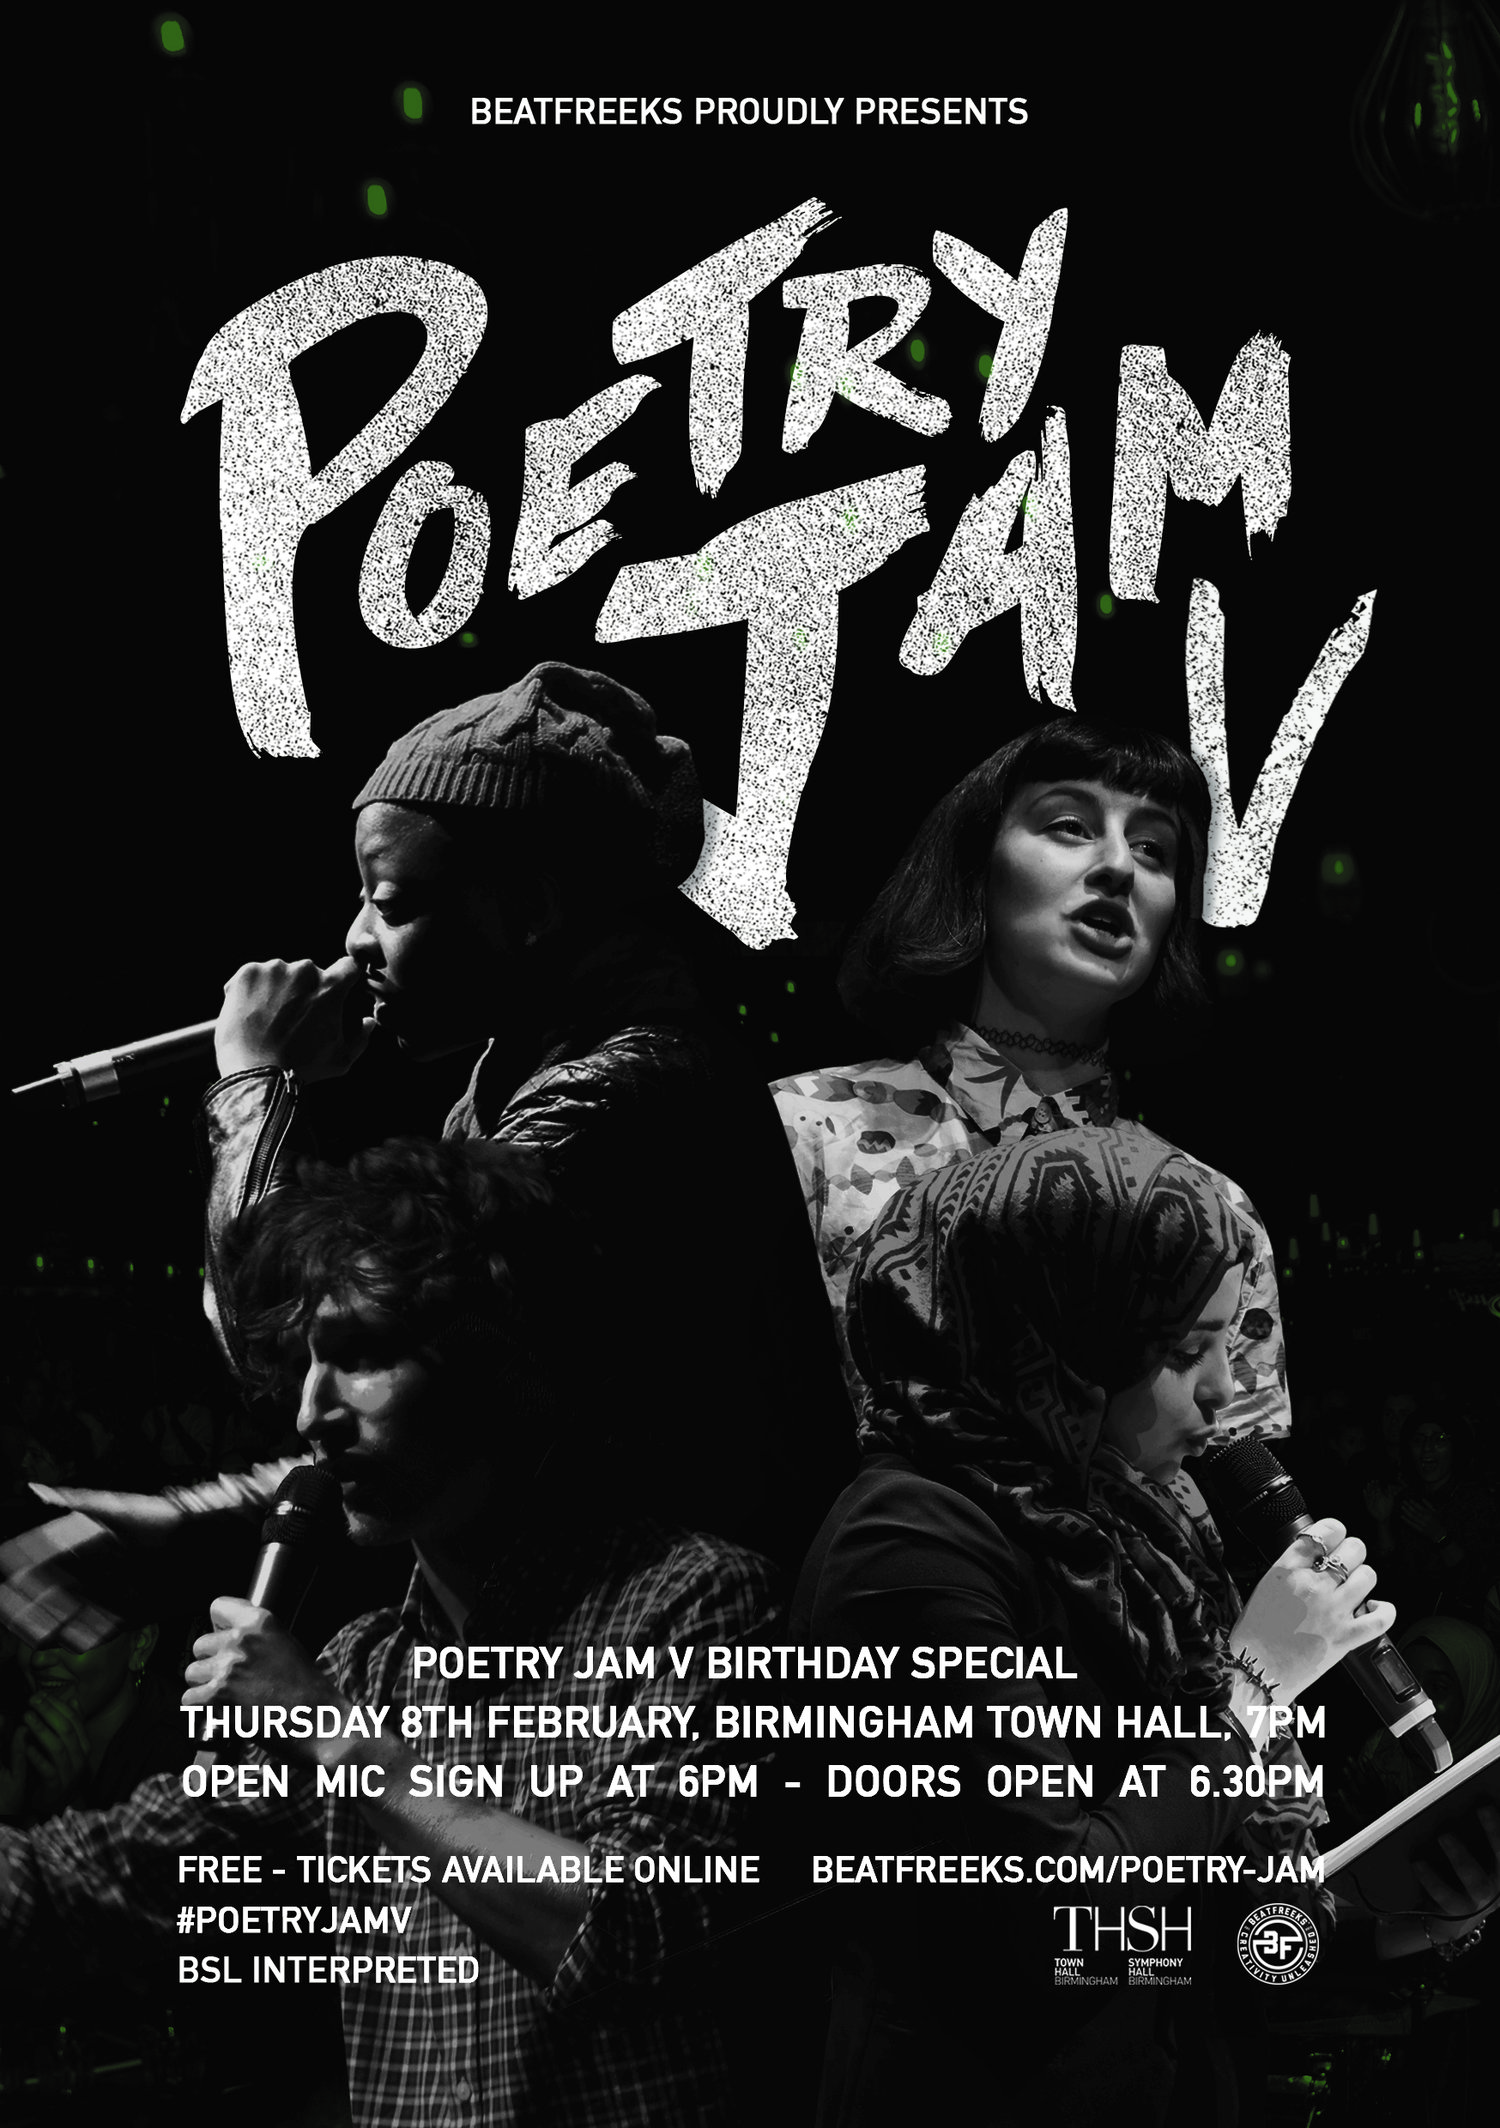 Beatfreeks celebrates five years of 'Poetry Jam' with a special public birthday celebration at the Birmingham Town Hall